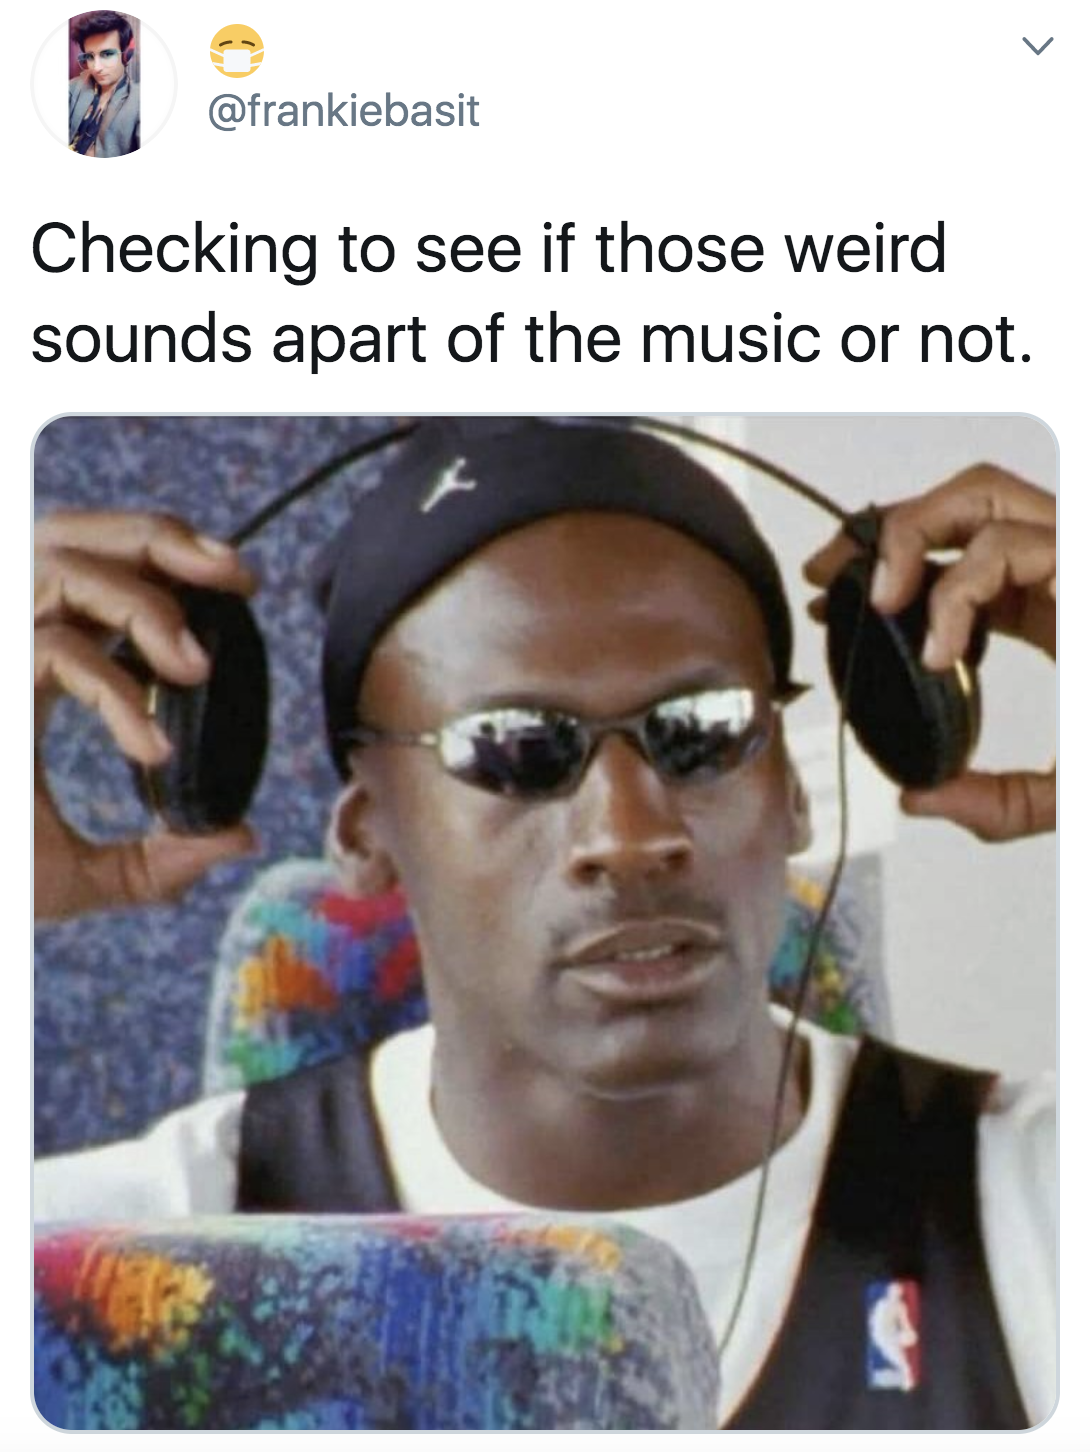 22 Things Pretty Much Everyone Has Experienced But Never, Ever Talks About